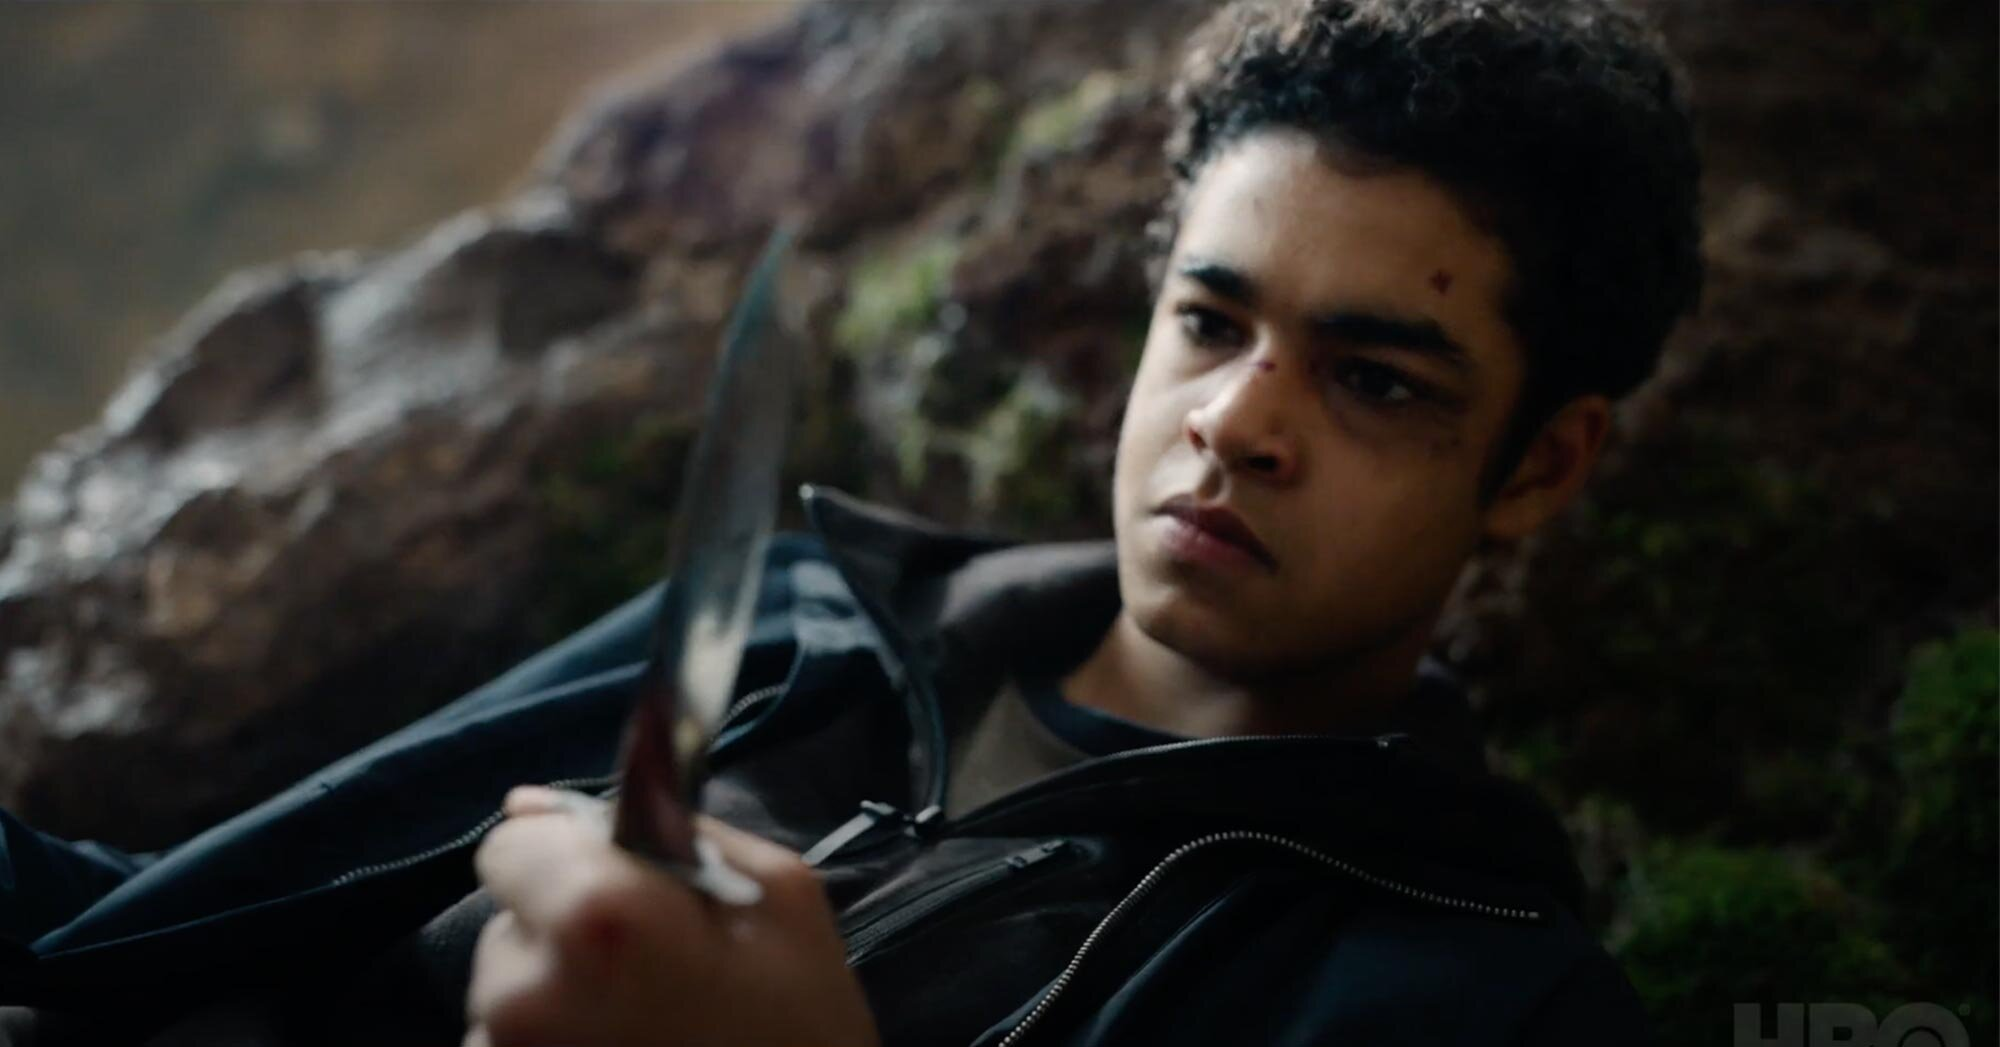 His Dark Materials season 2 trailer cuts open new worlds with Subtle Knife    EW.com